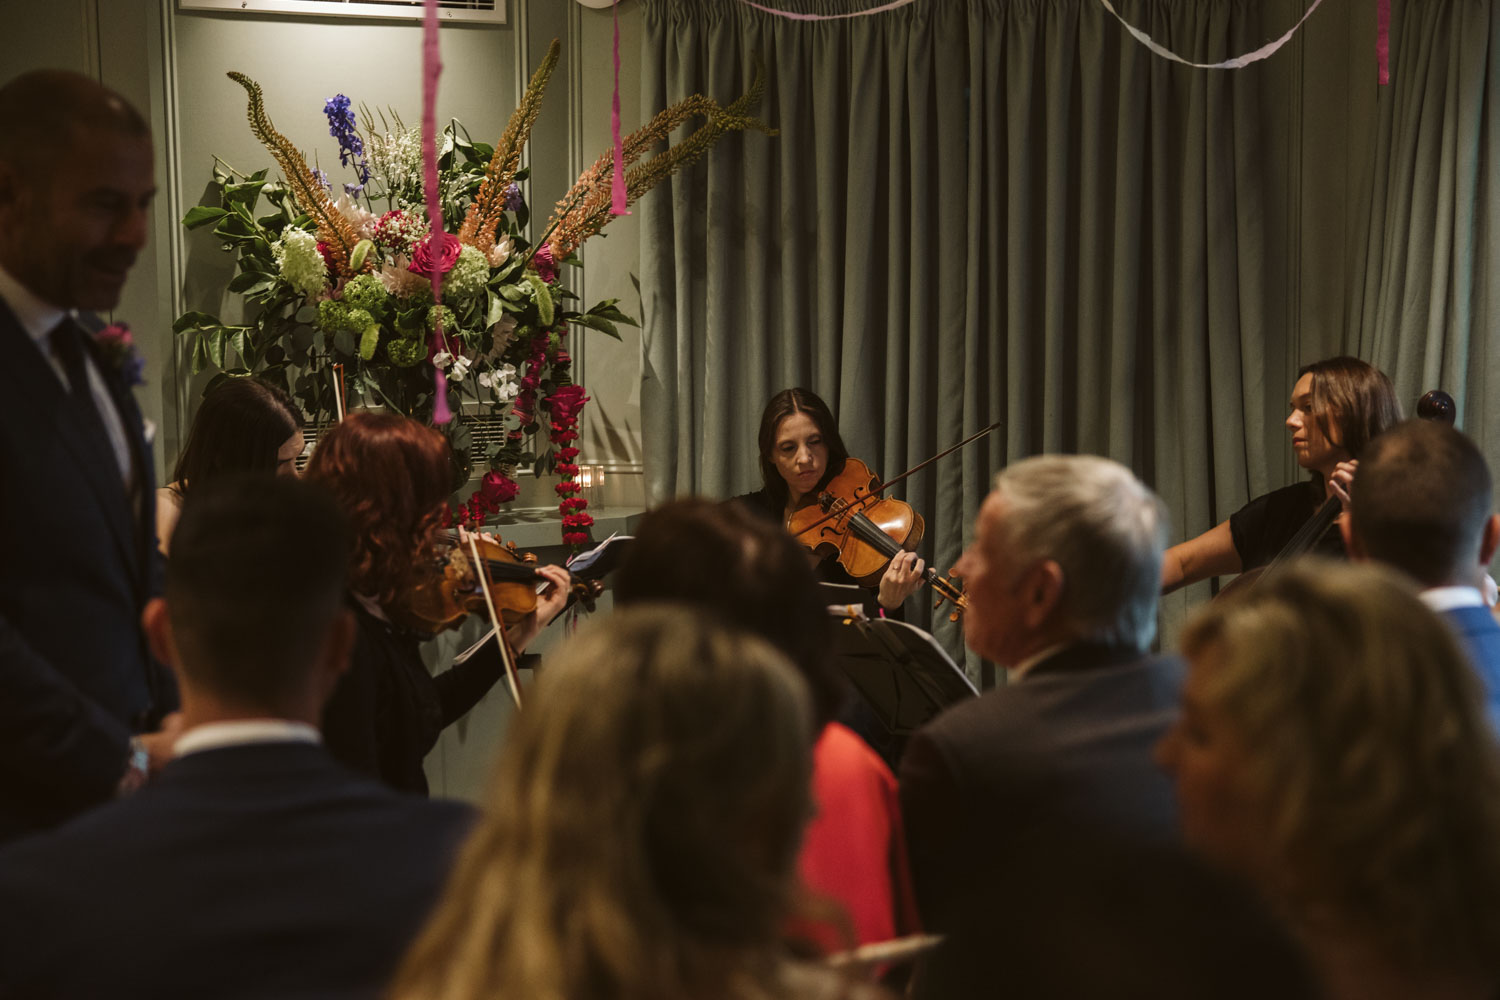 Violinist playing ahead of Bride's entrance